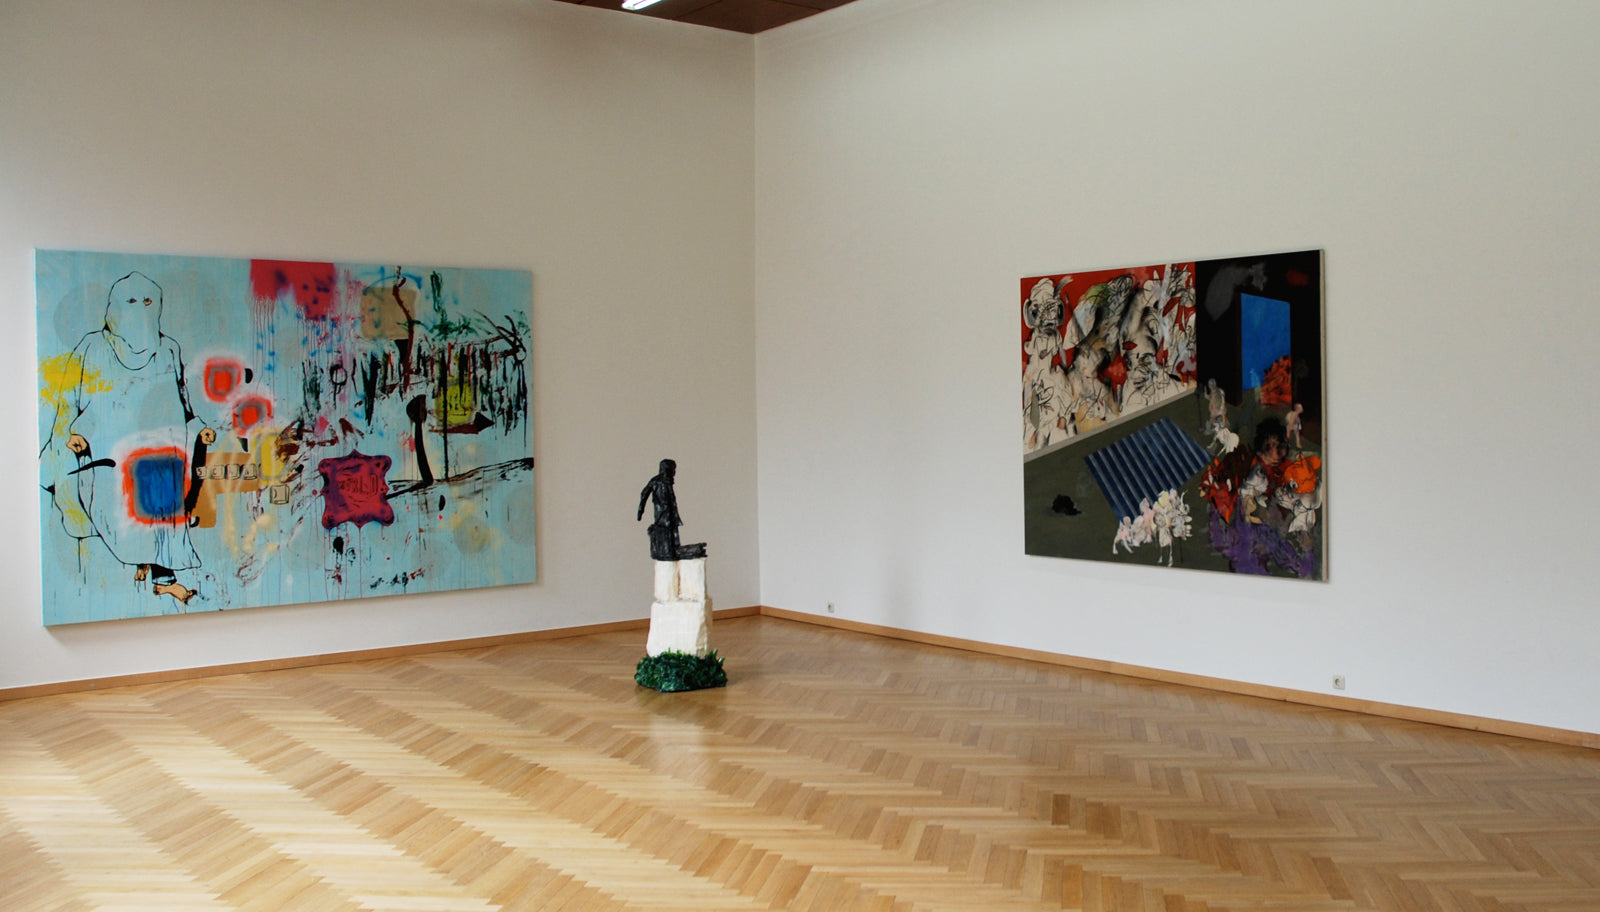 The Future is but the obsolete in reverse, Installation view, 2008, Galerie Michael Janssen, Berlin